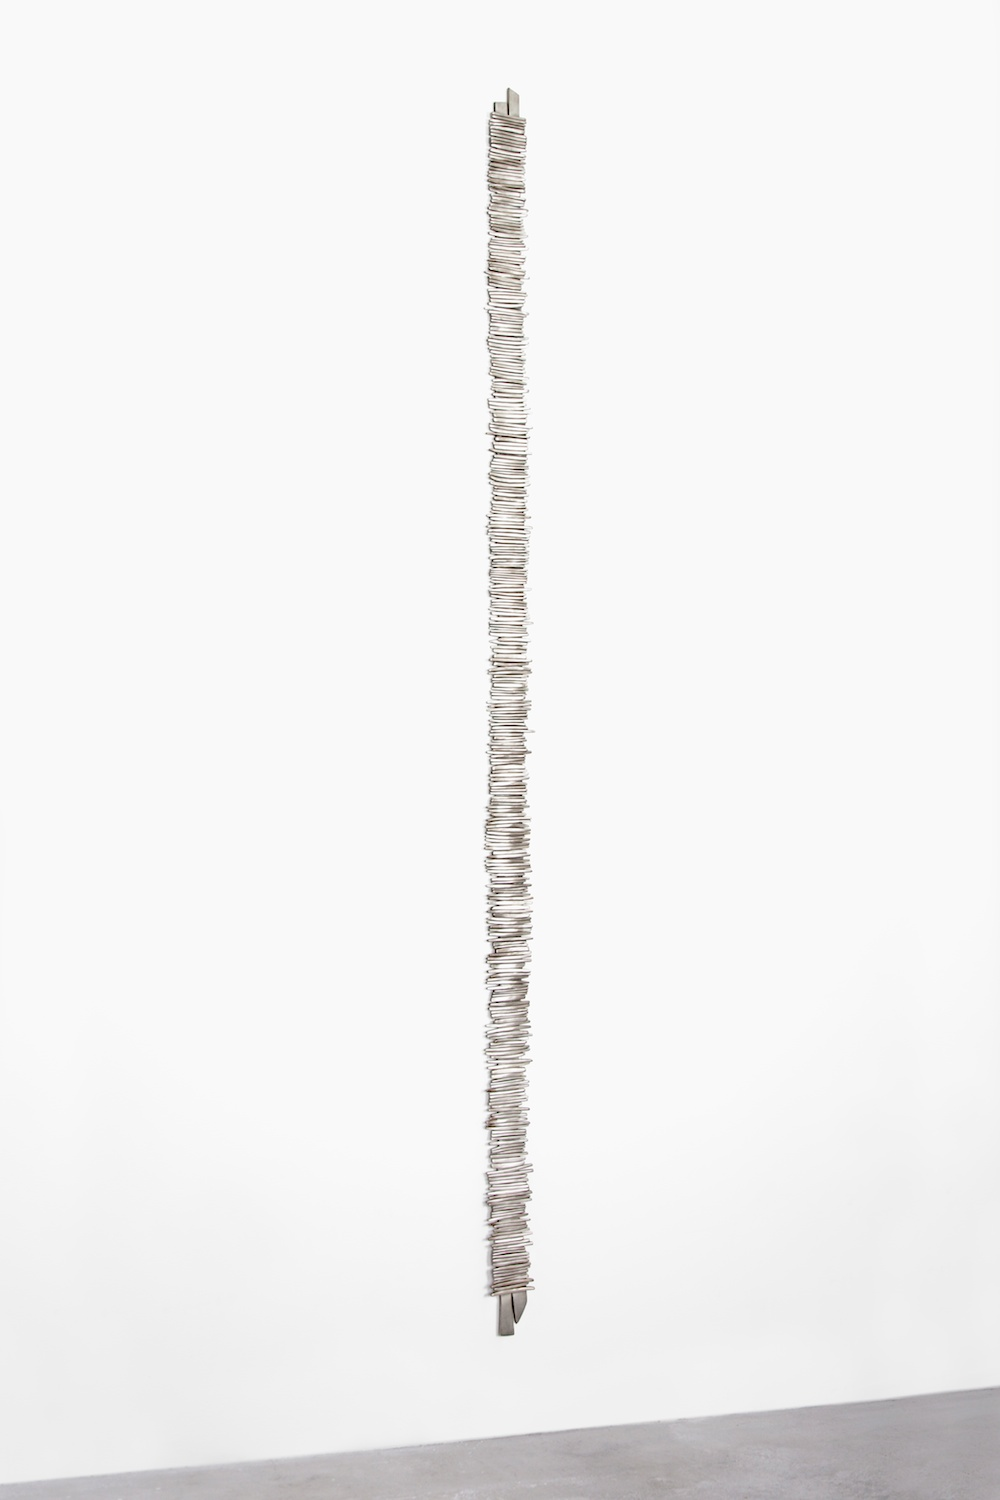 "Anthony Pearson Untitled (Tablet) 2012 Bronze relief with silver nitrate patina 82"" x 3 1/4"" AP321"